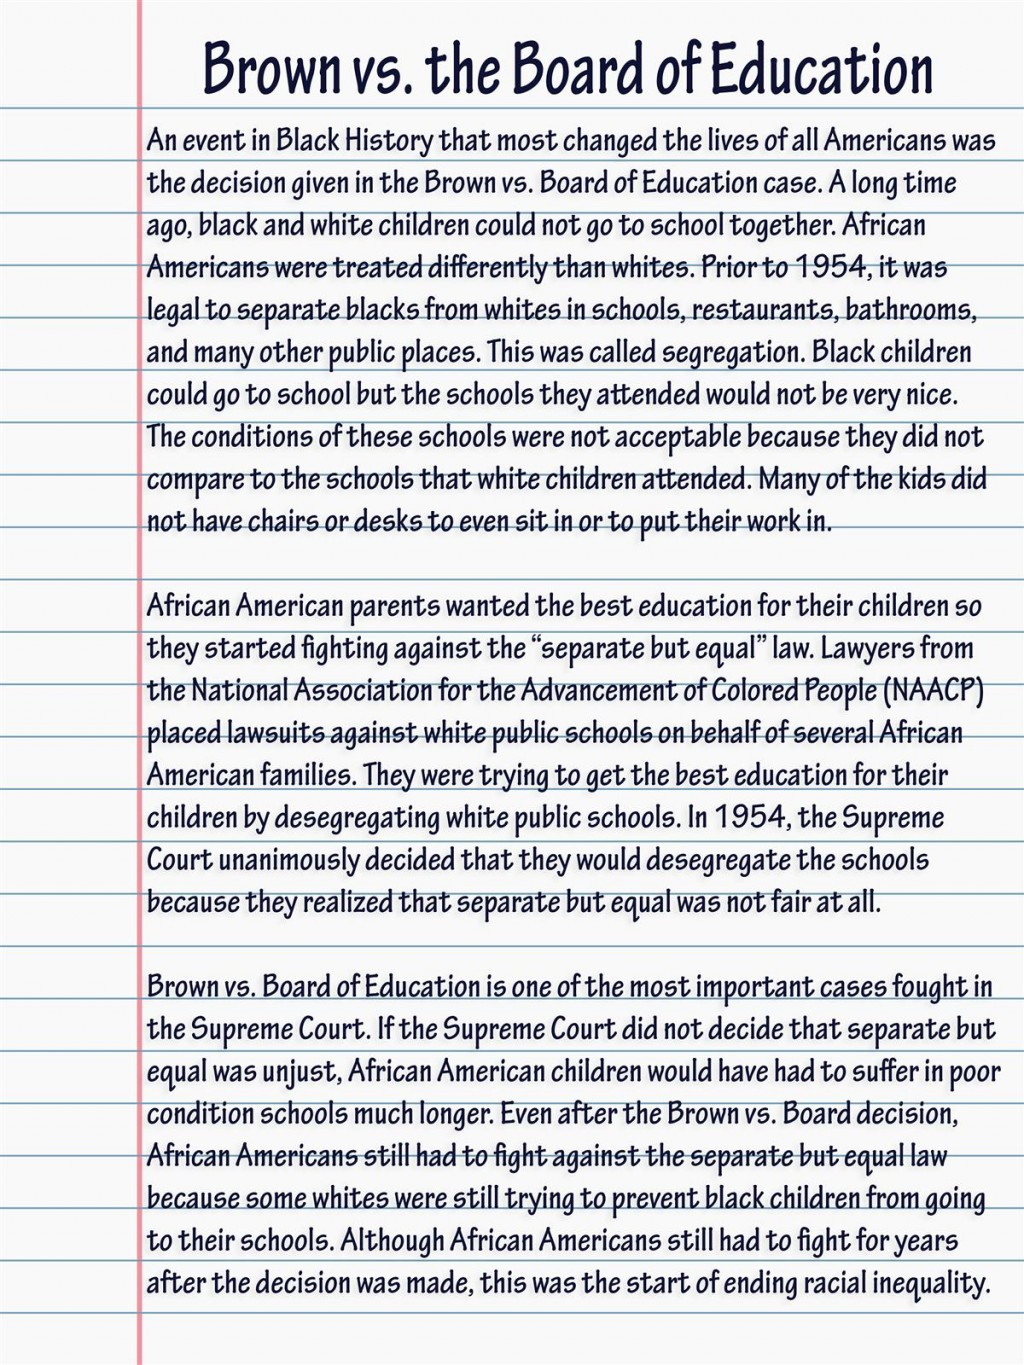 002 Bhessay Brown Vs Board Of Education Essay Magnificent Conclusion Term Paper Thematic Large